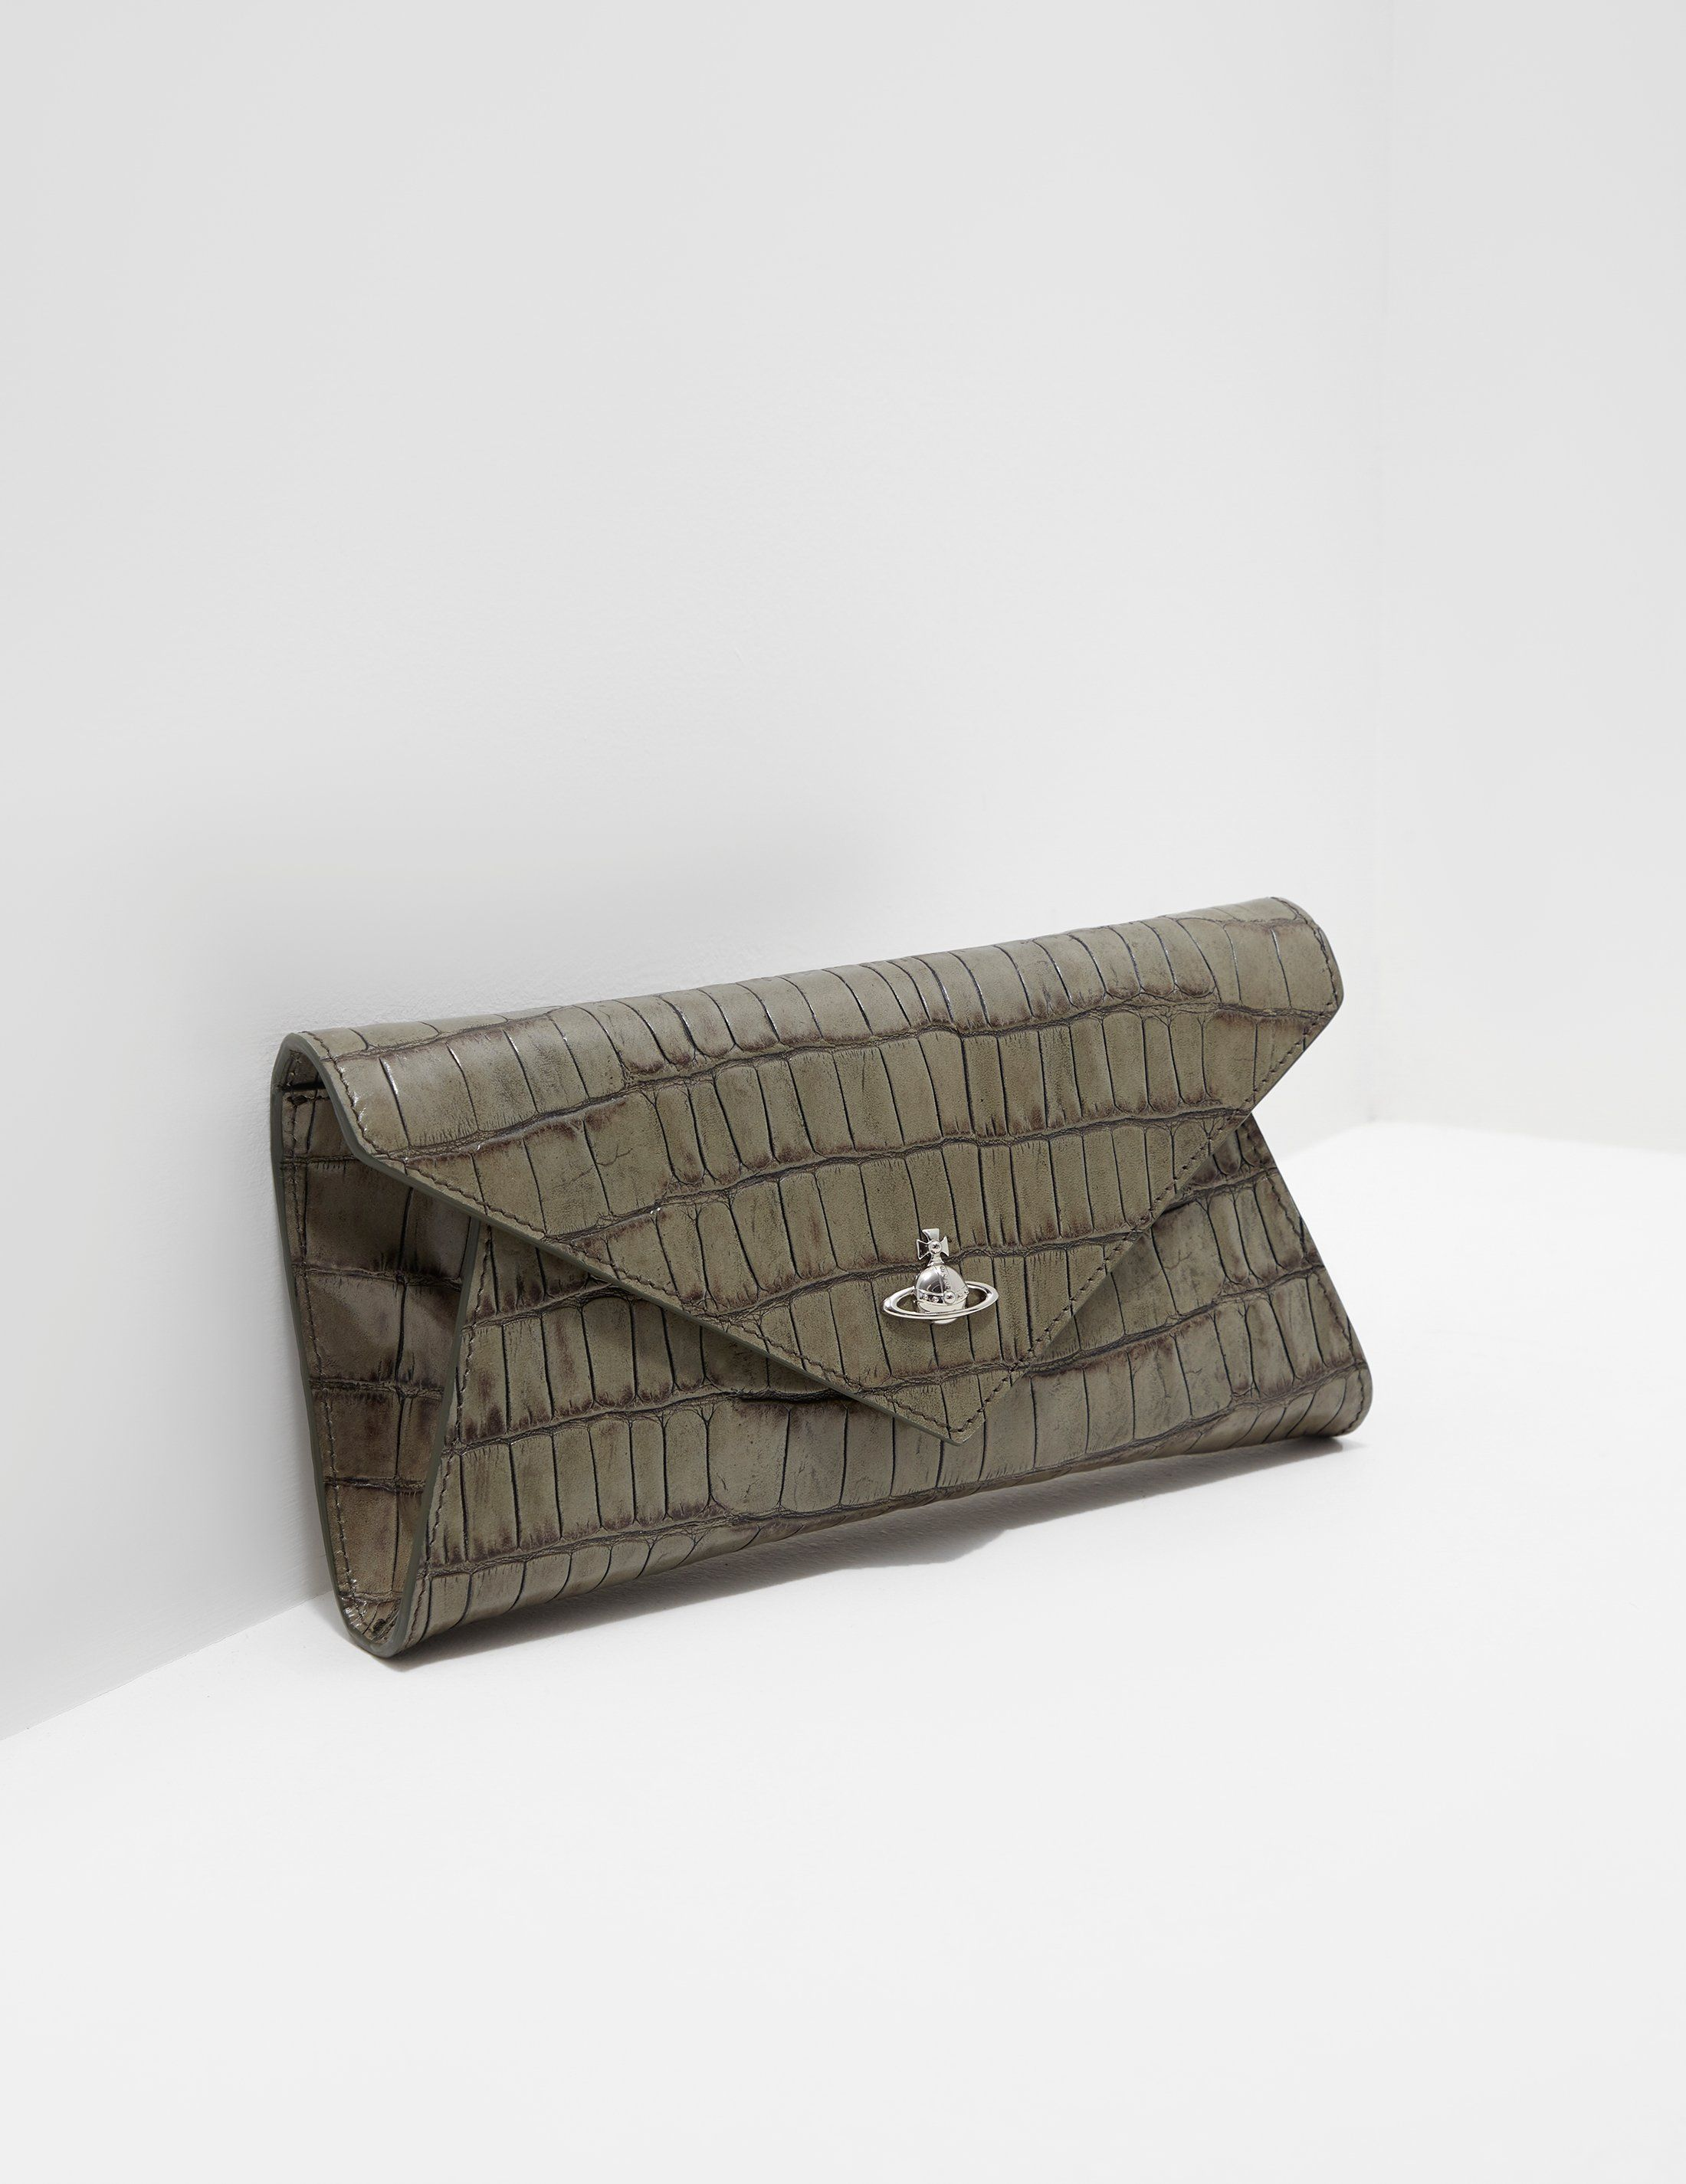 Vivienne Westwood Lisa Croc Envelope Clutch Bag - Online Exclusive